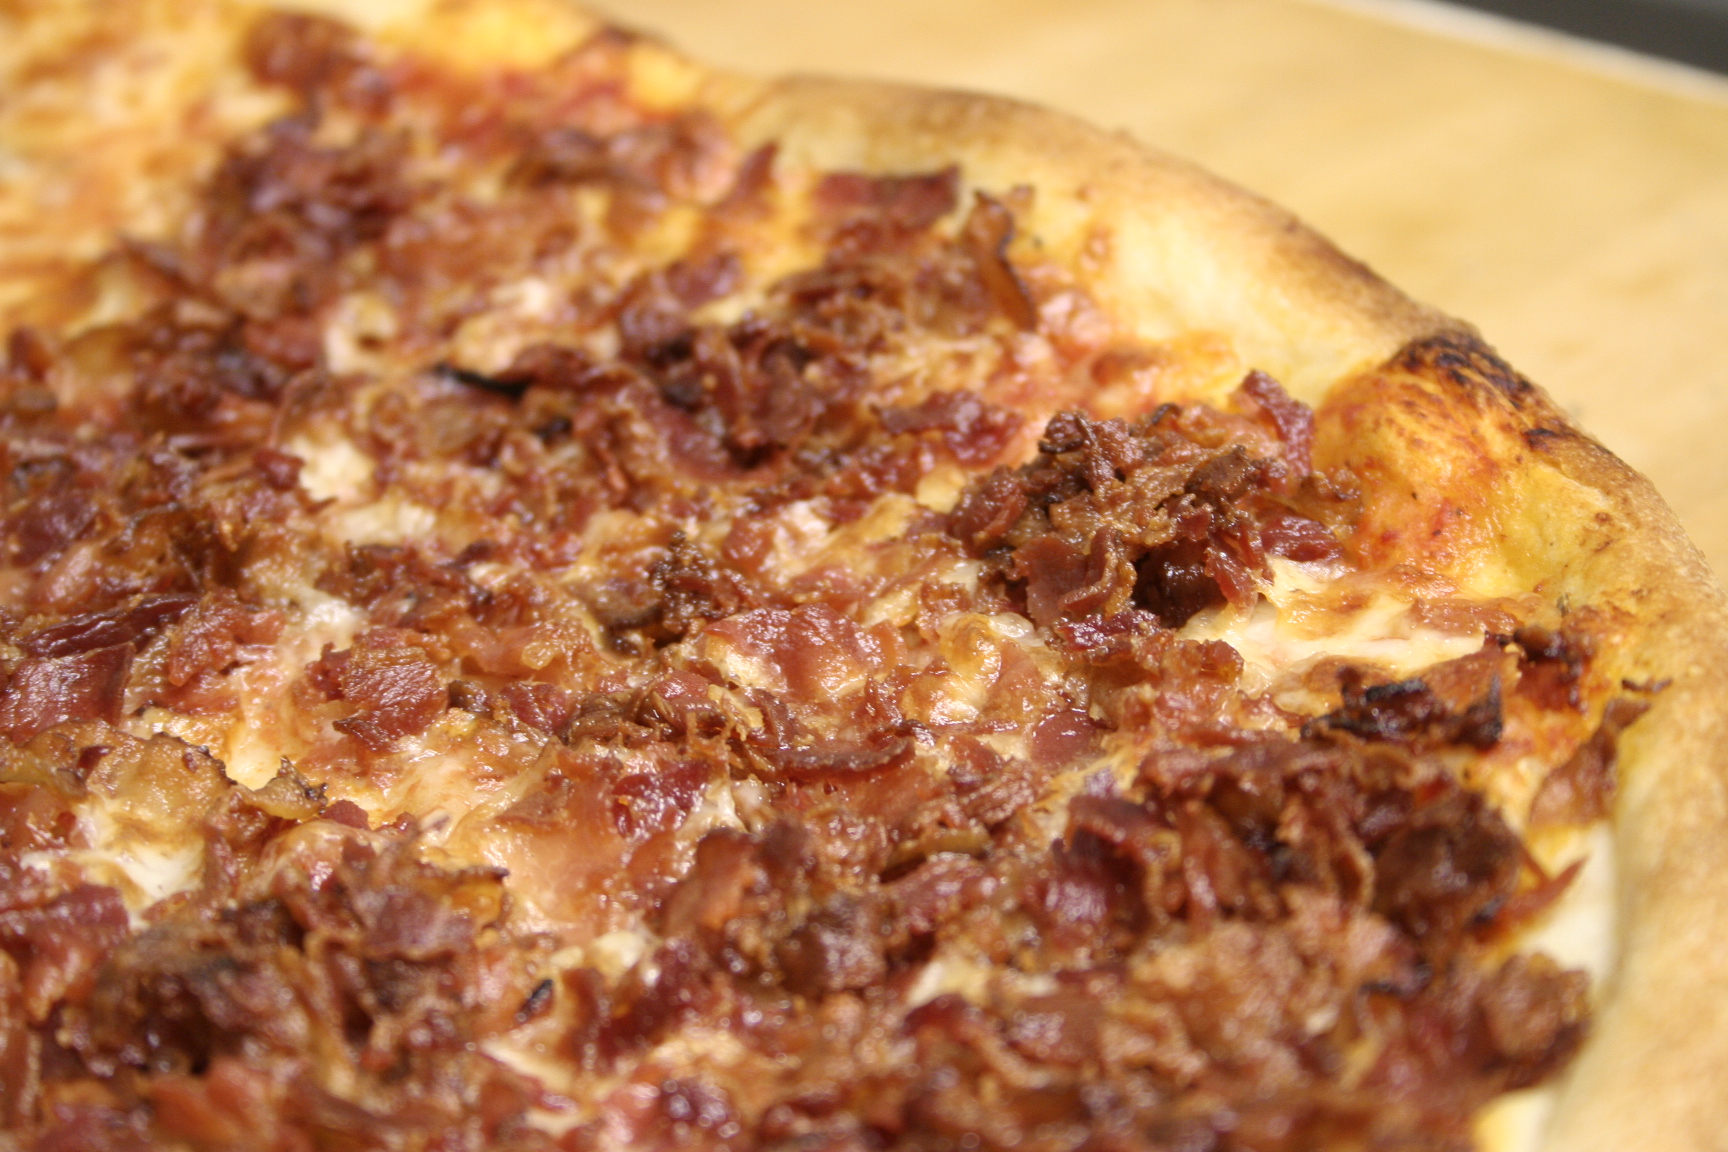 Pizza topped with cheese and bacon